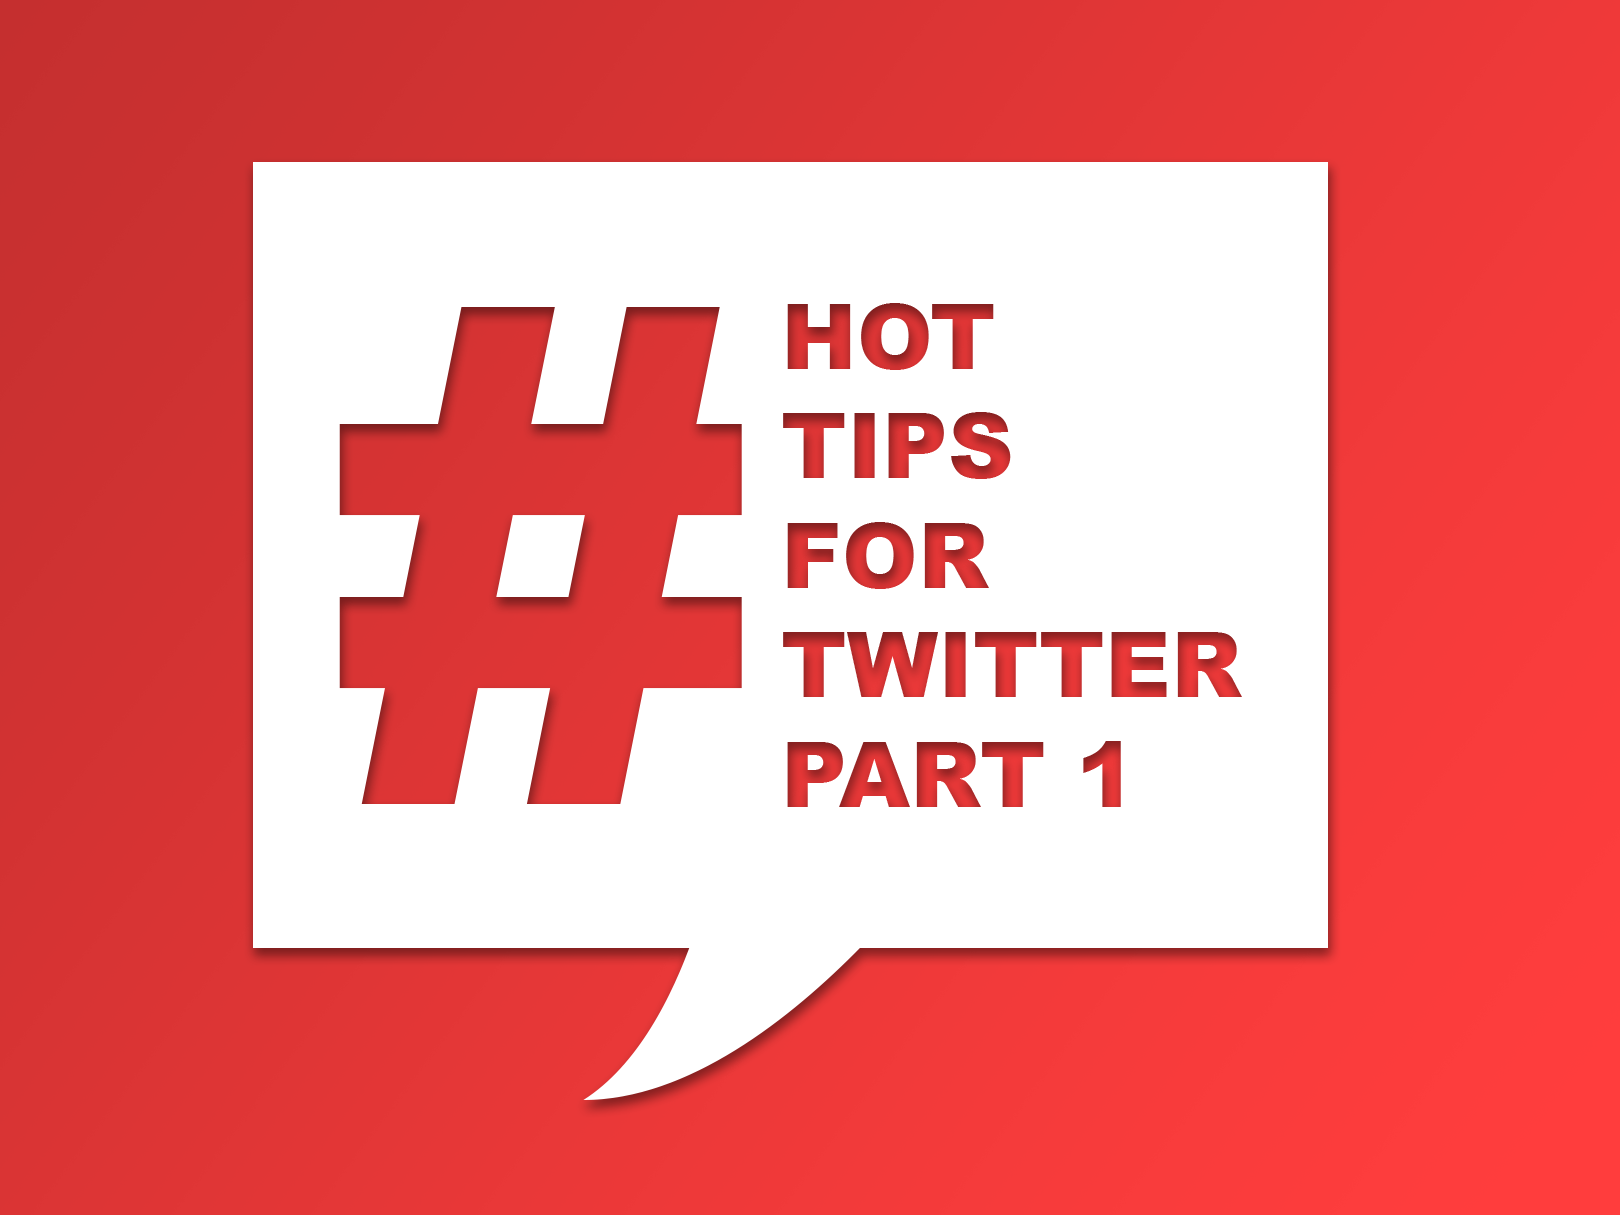 Image featuring a hashtag and text: Hot tips for twitter, part 1.